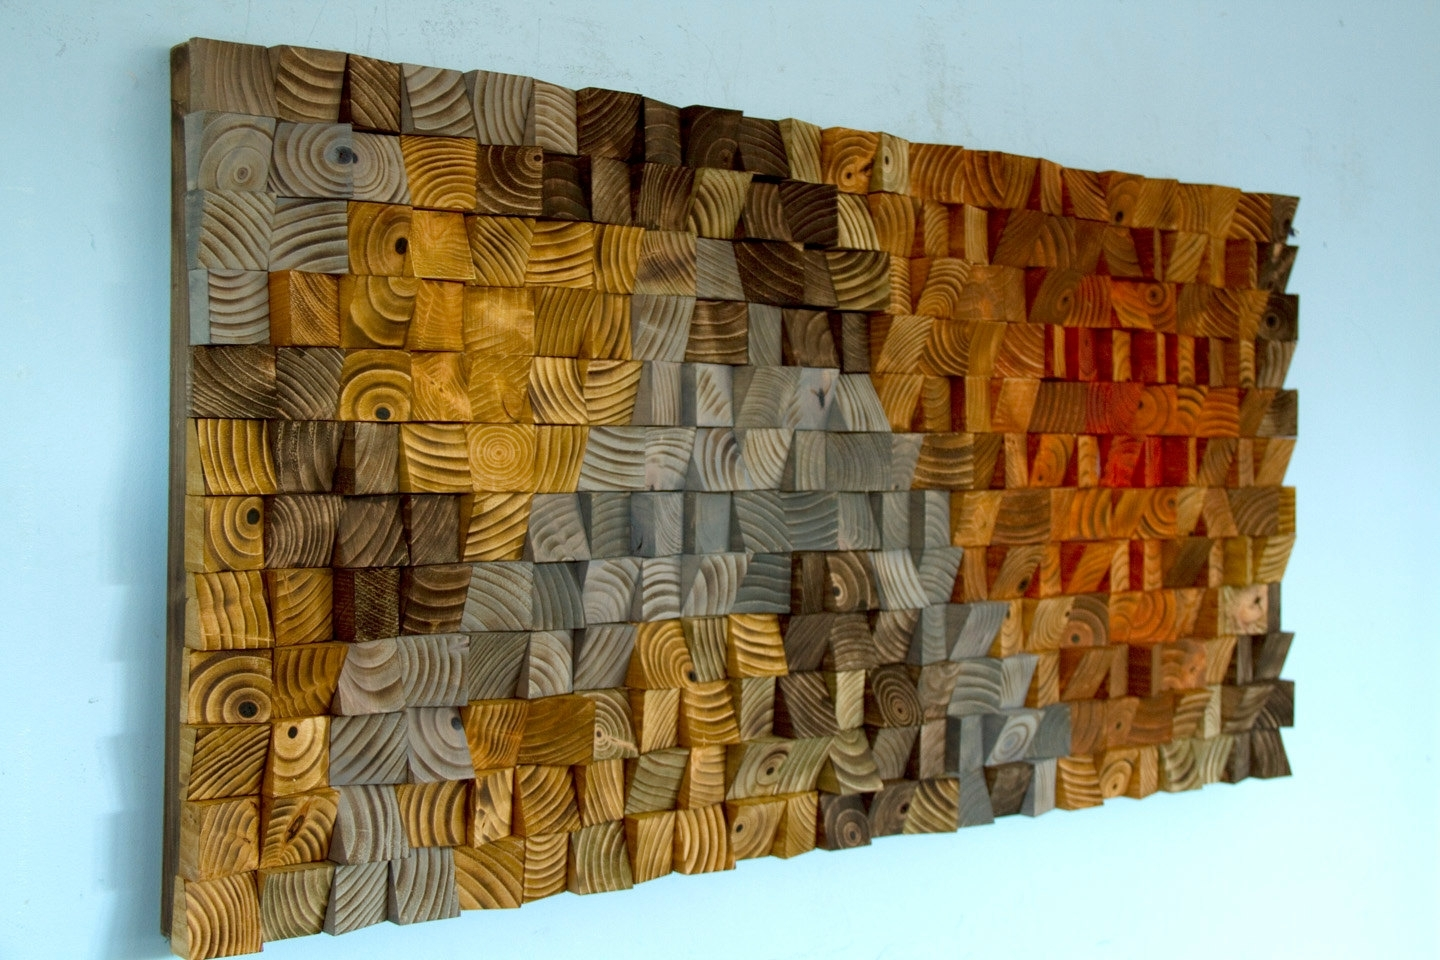 Well Known Exclusive Wall Art With Regard To Exclusive Ideas Wall Wood Art With Rustic Sculpture Abstract (View 15 of 15)